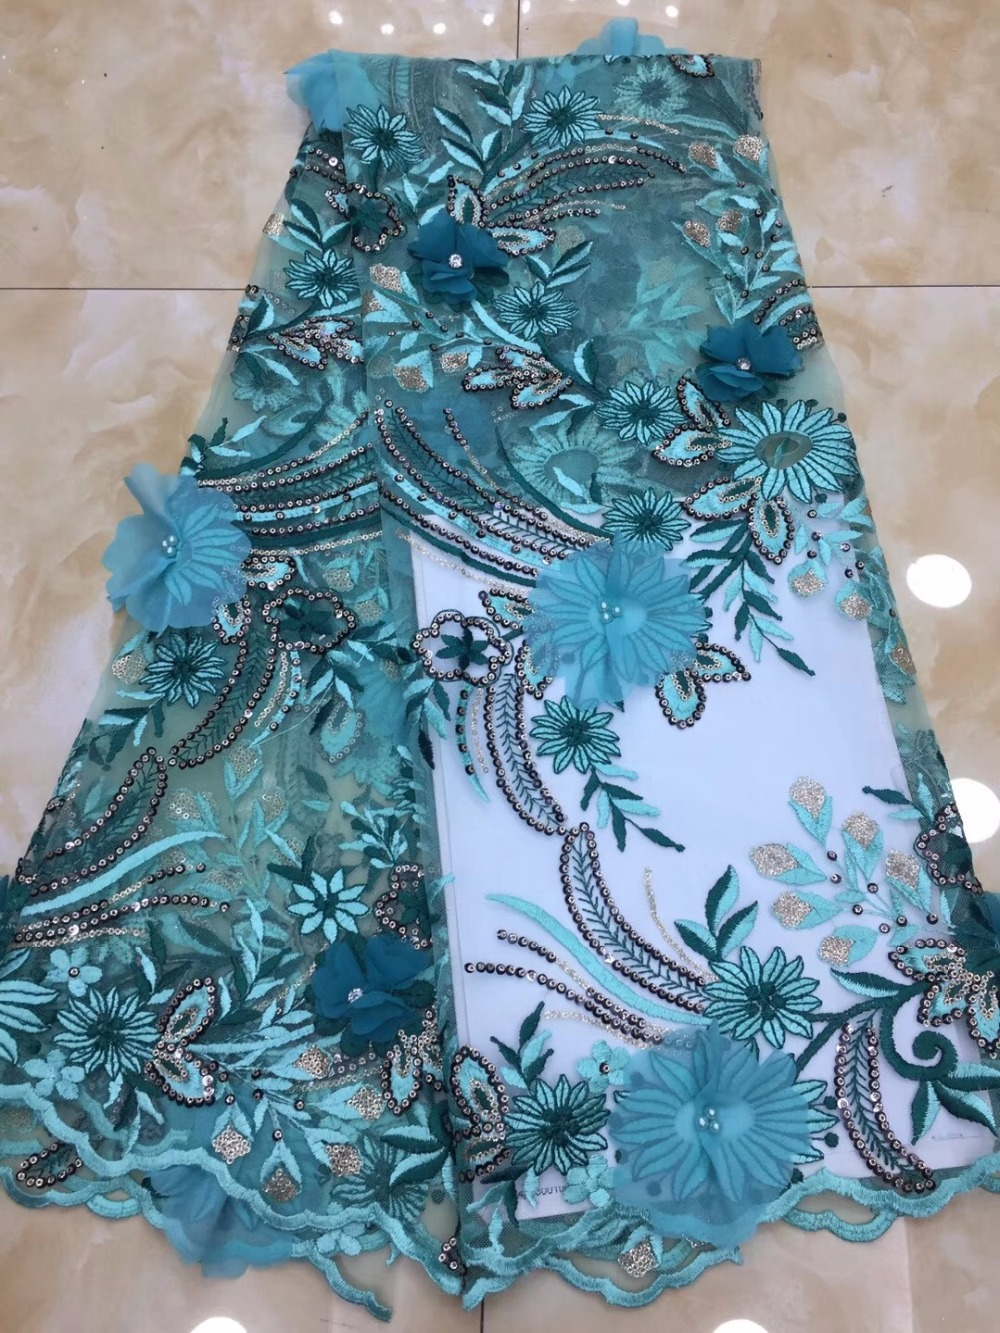 Latest Fashion Nigerian French Lace Fabric Fashion African Tulle Mesh Fabric For Wedding African Lace Material With Beaded